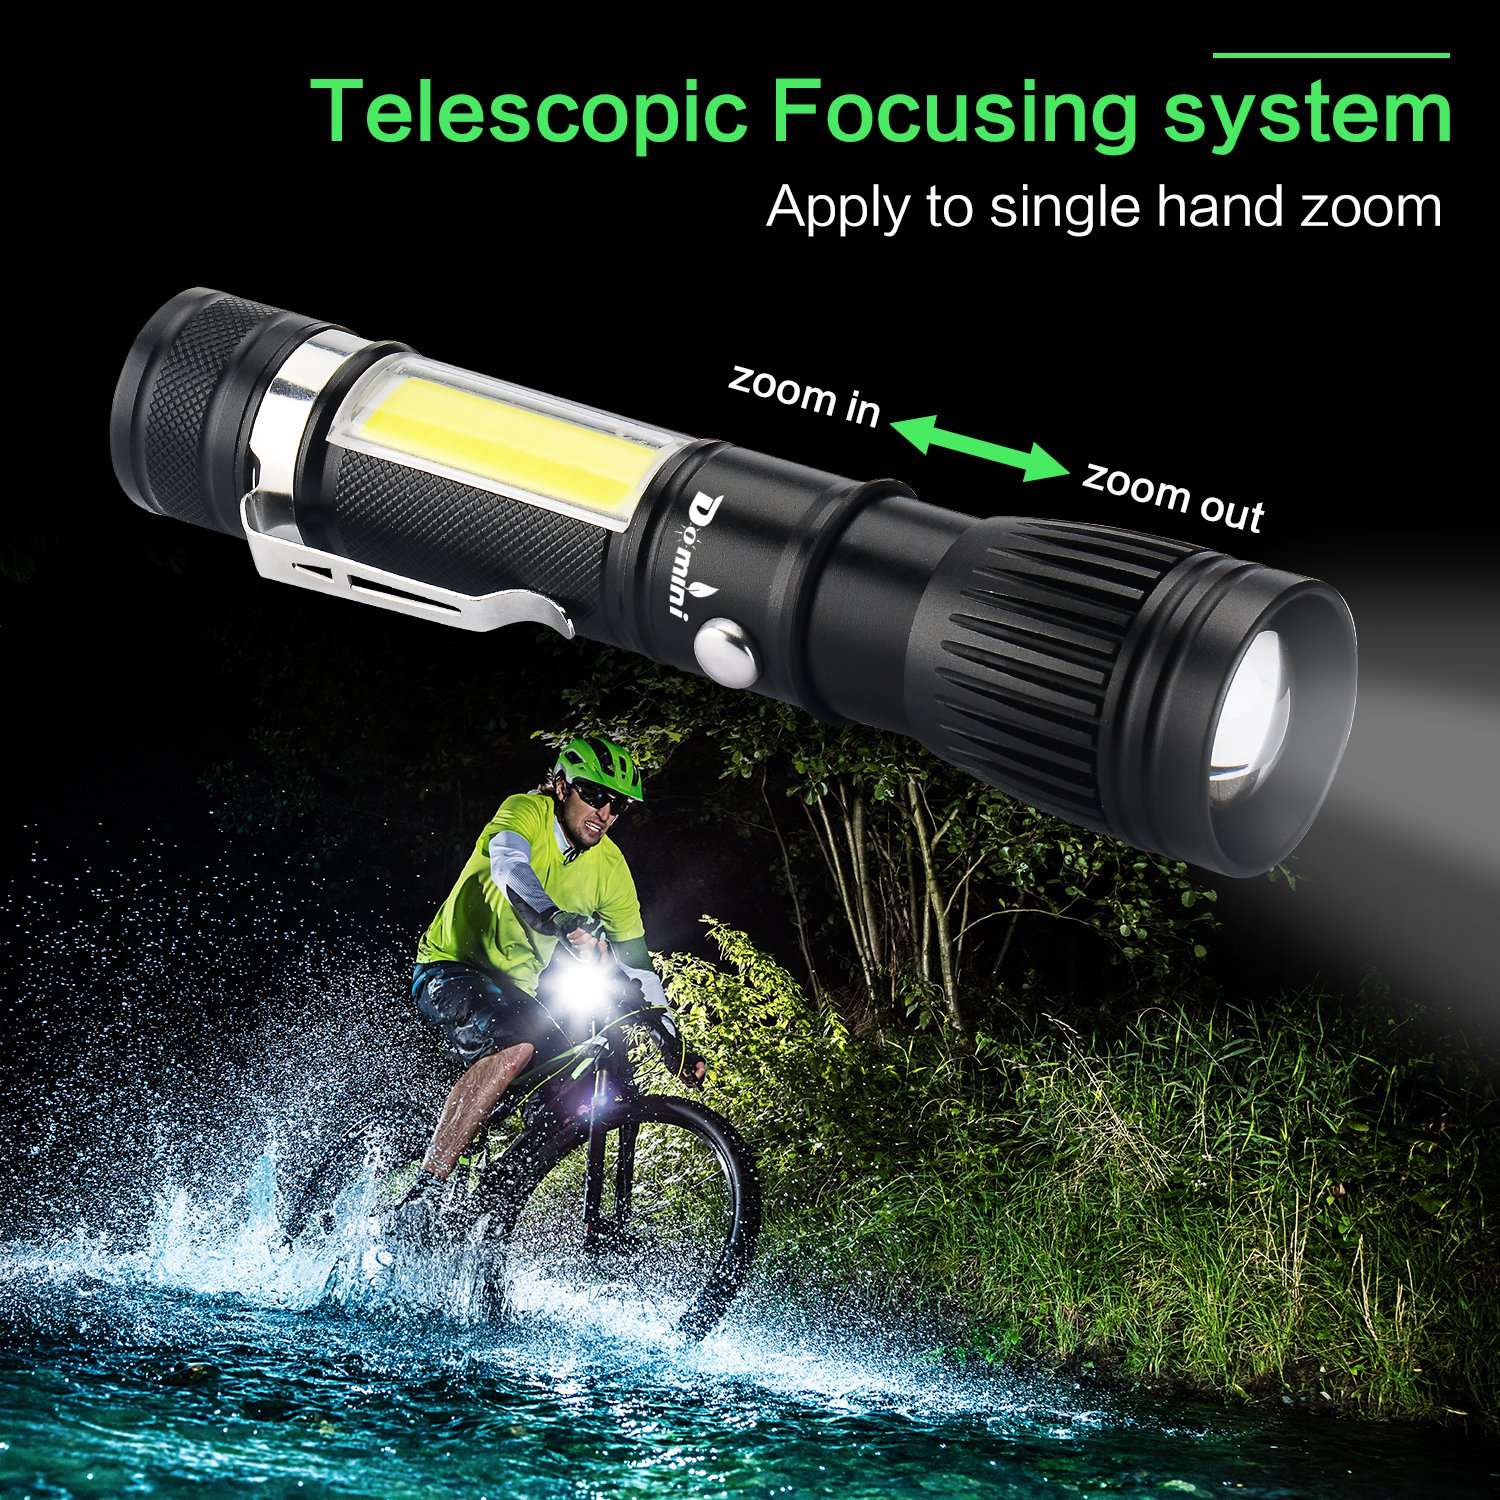 Domini LED Tactical Flashlight - USB Rechargeable Zoomable Flashlight XM-L T6 + COB Torch for Camp Emergency Reading Car Checking and Work with USB charging (18650 battery including) by Domini (Image #4)